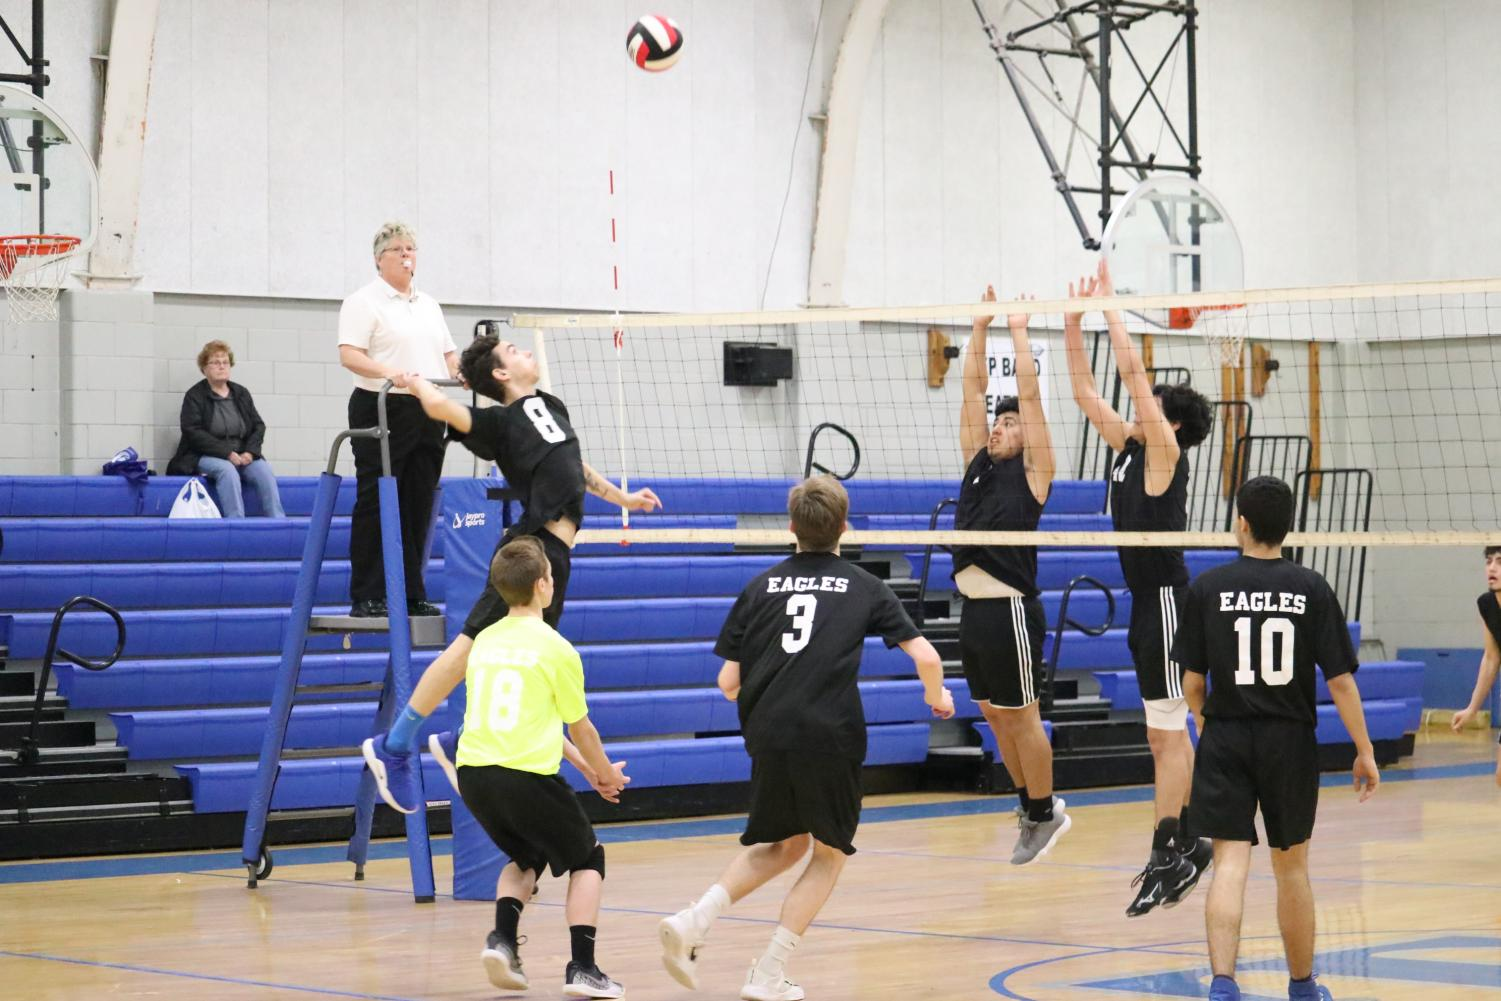 Louie Piatkowski soaring high to throw down a powerful spike against a rival team.